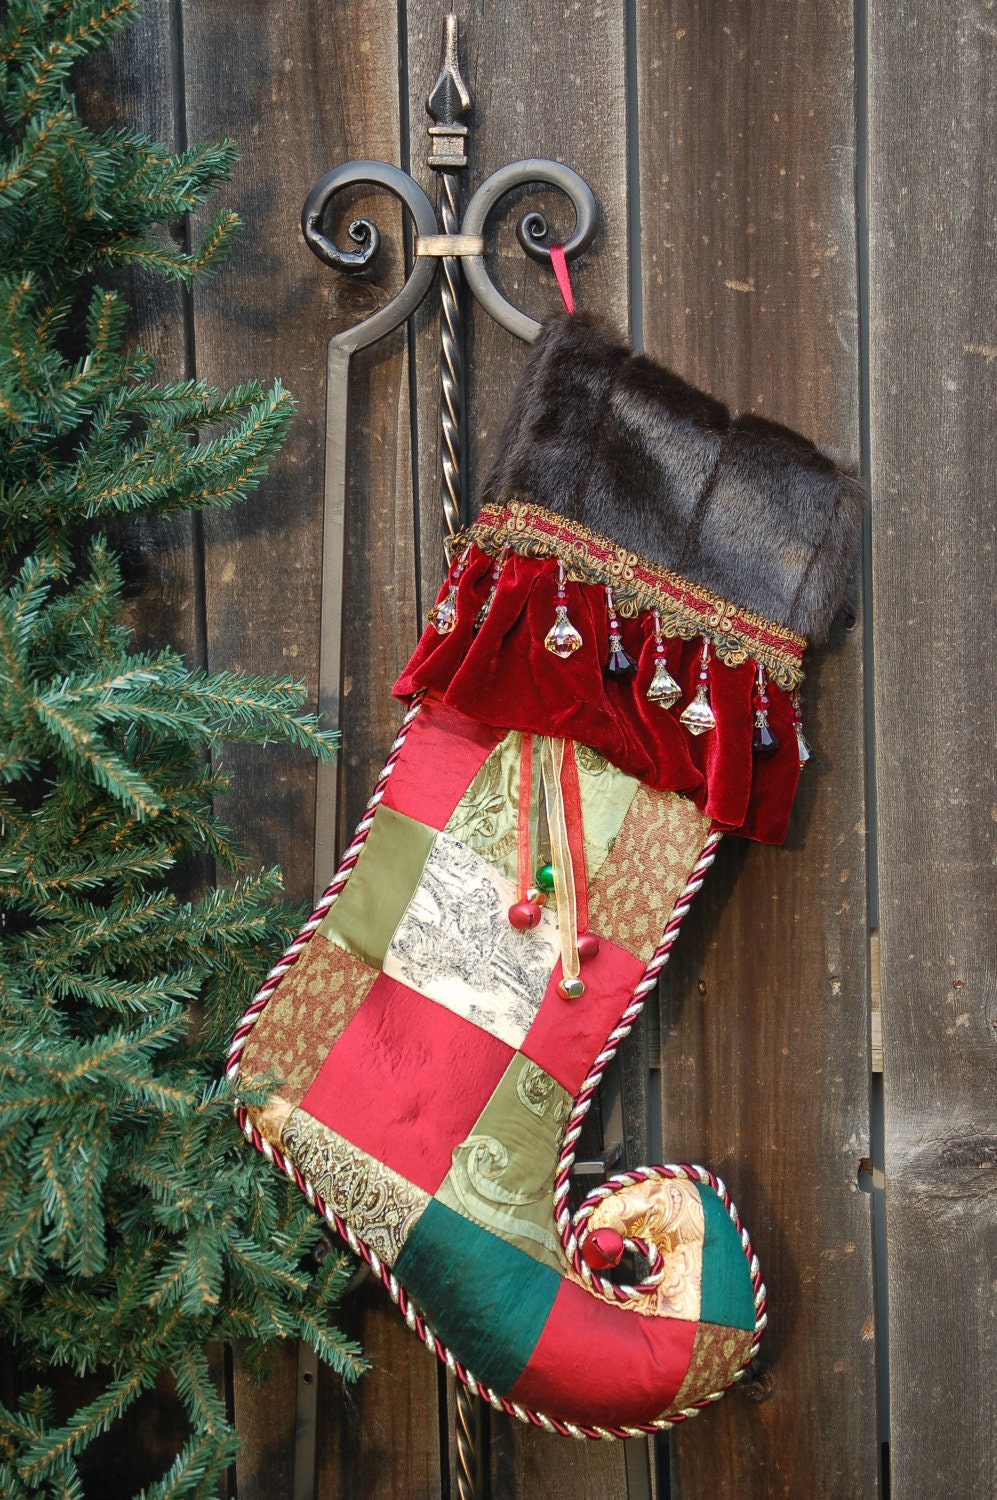 Harlequin Christmas stocking 1023